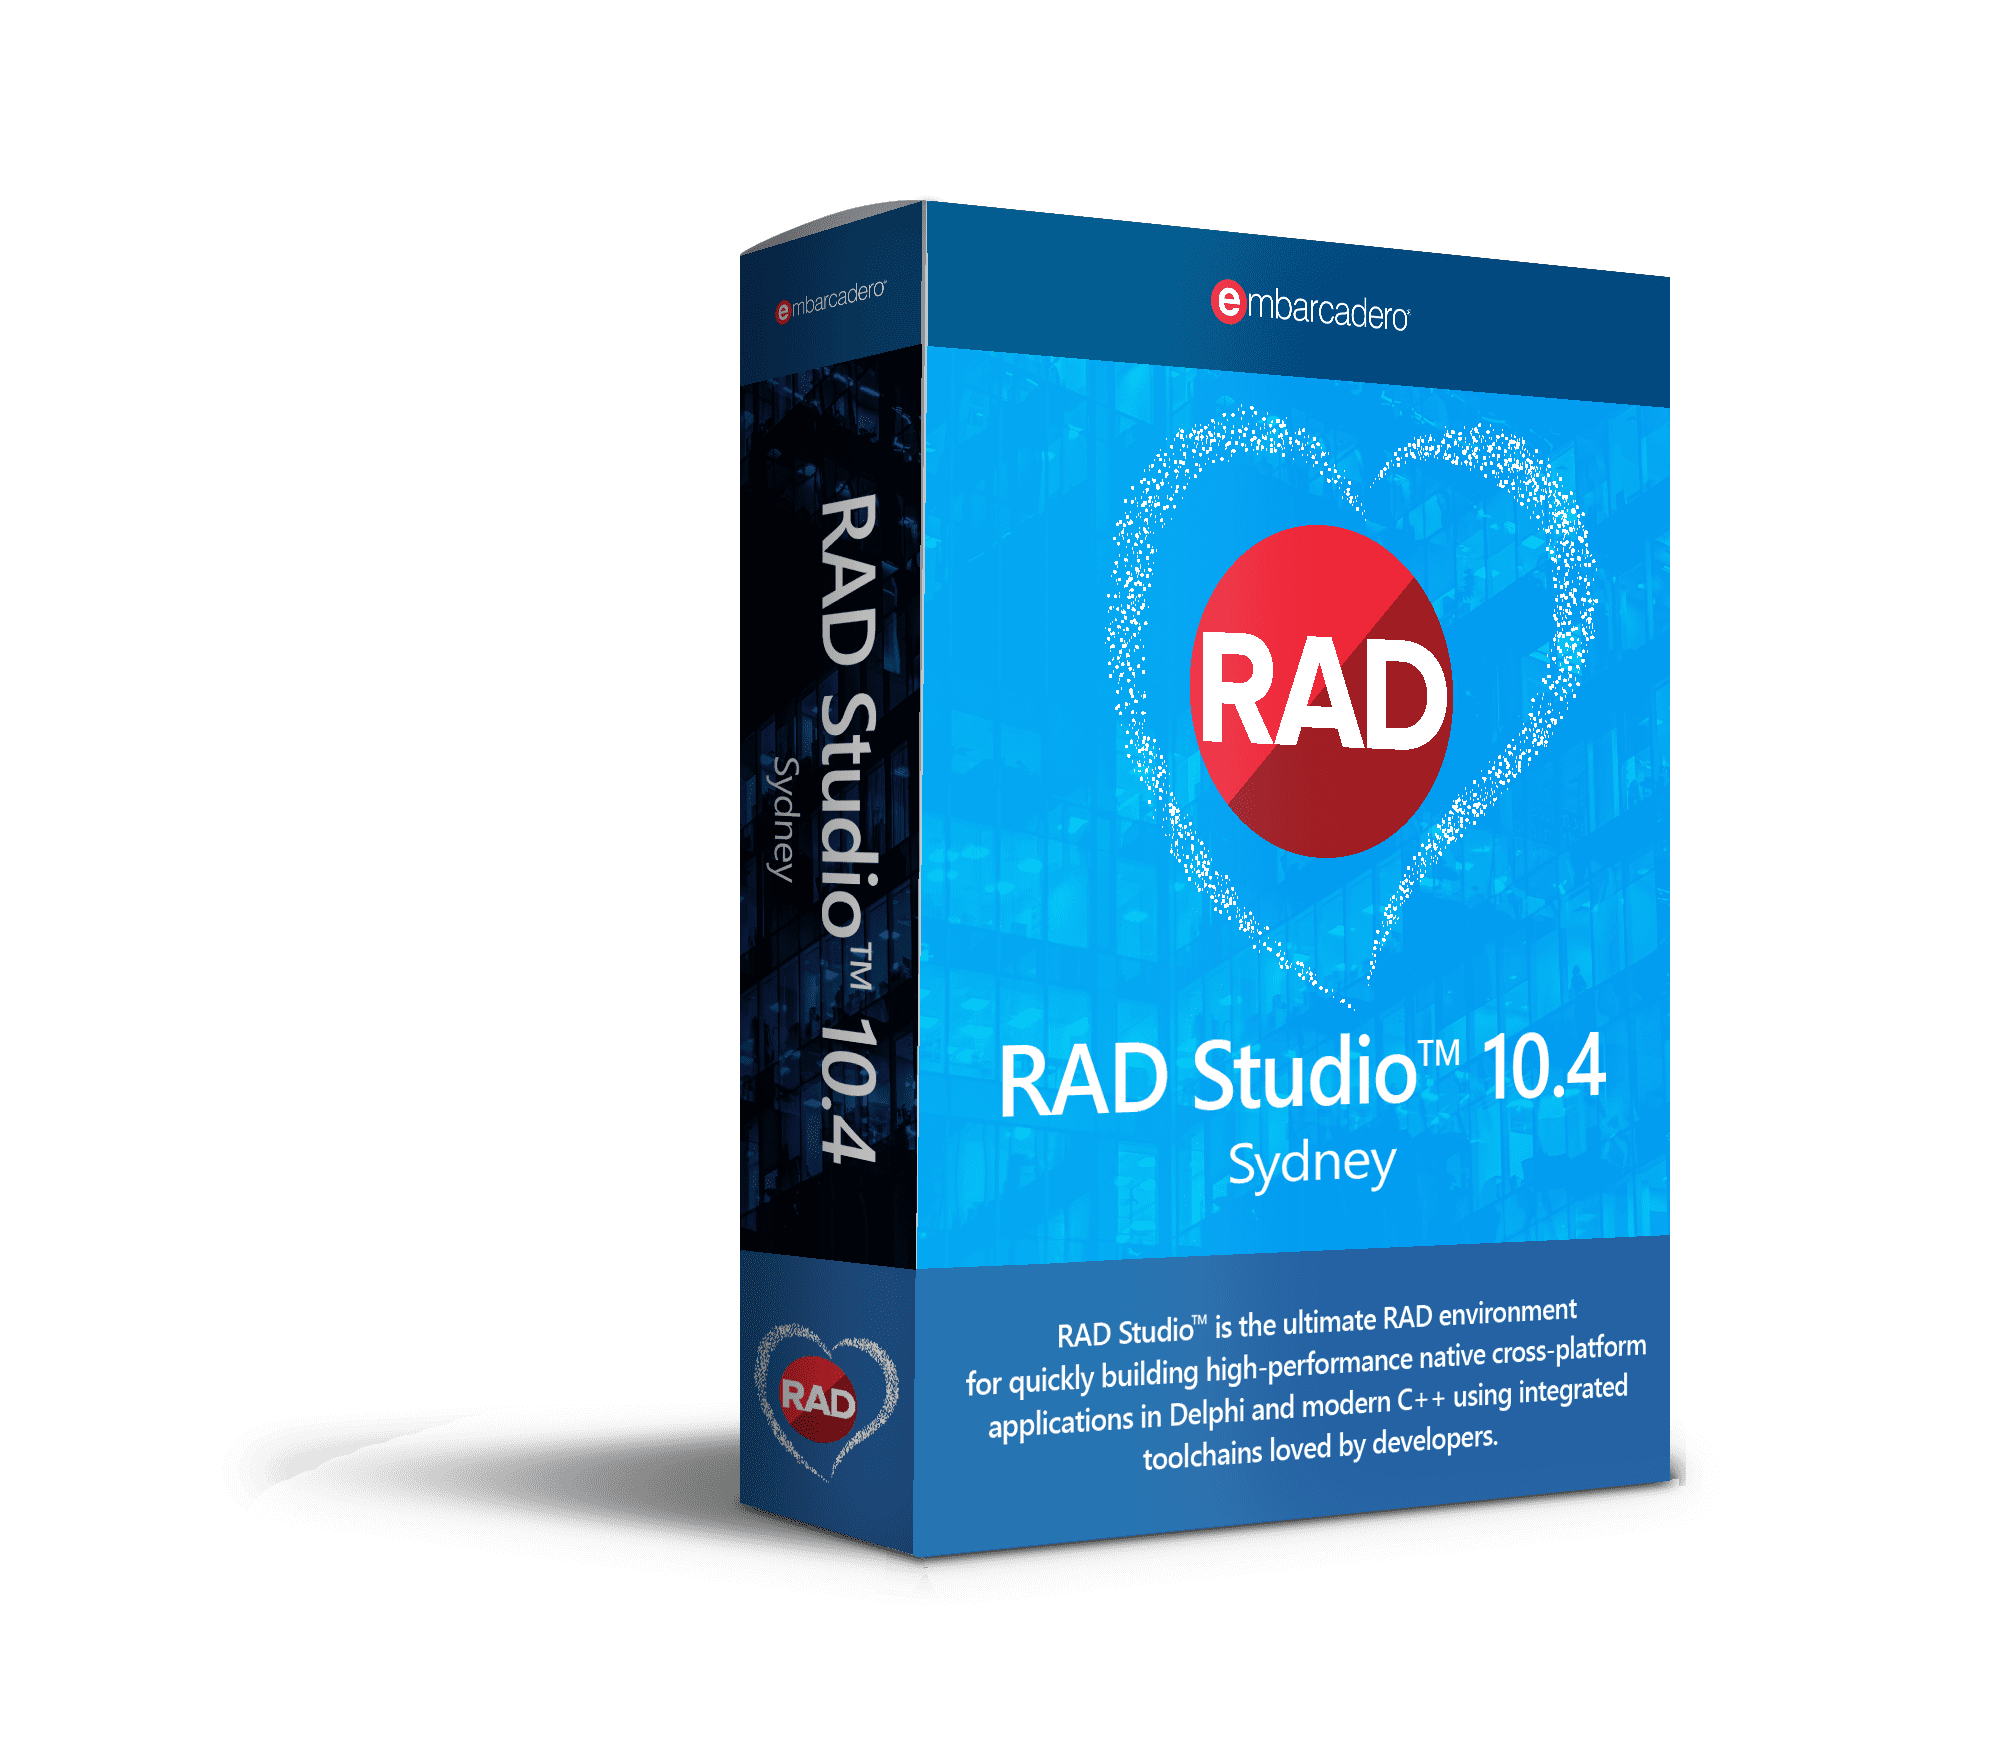 rad box10.4 mock up 2